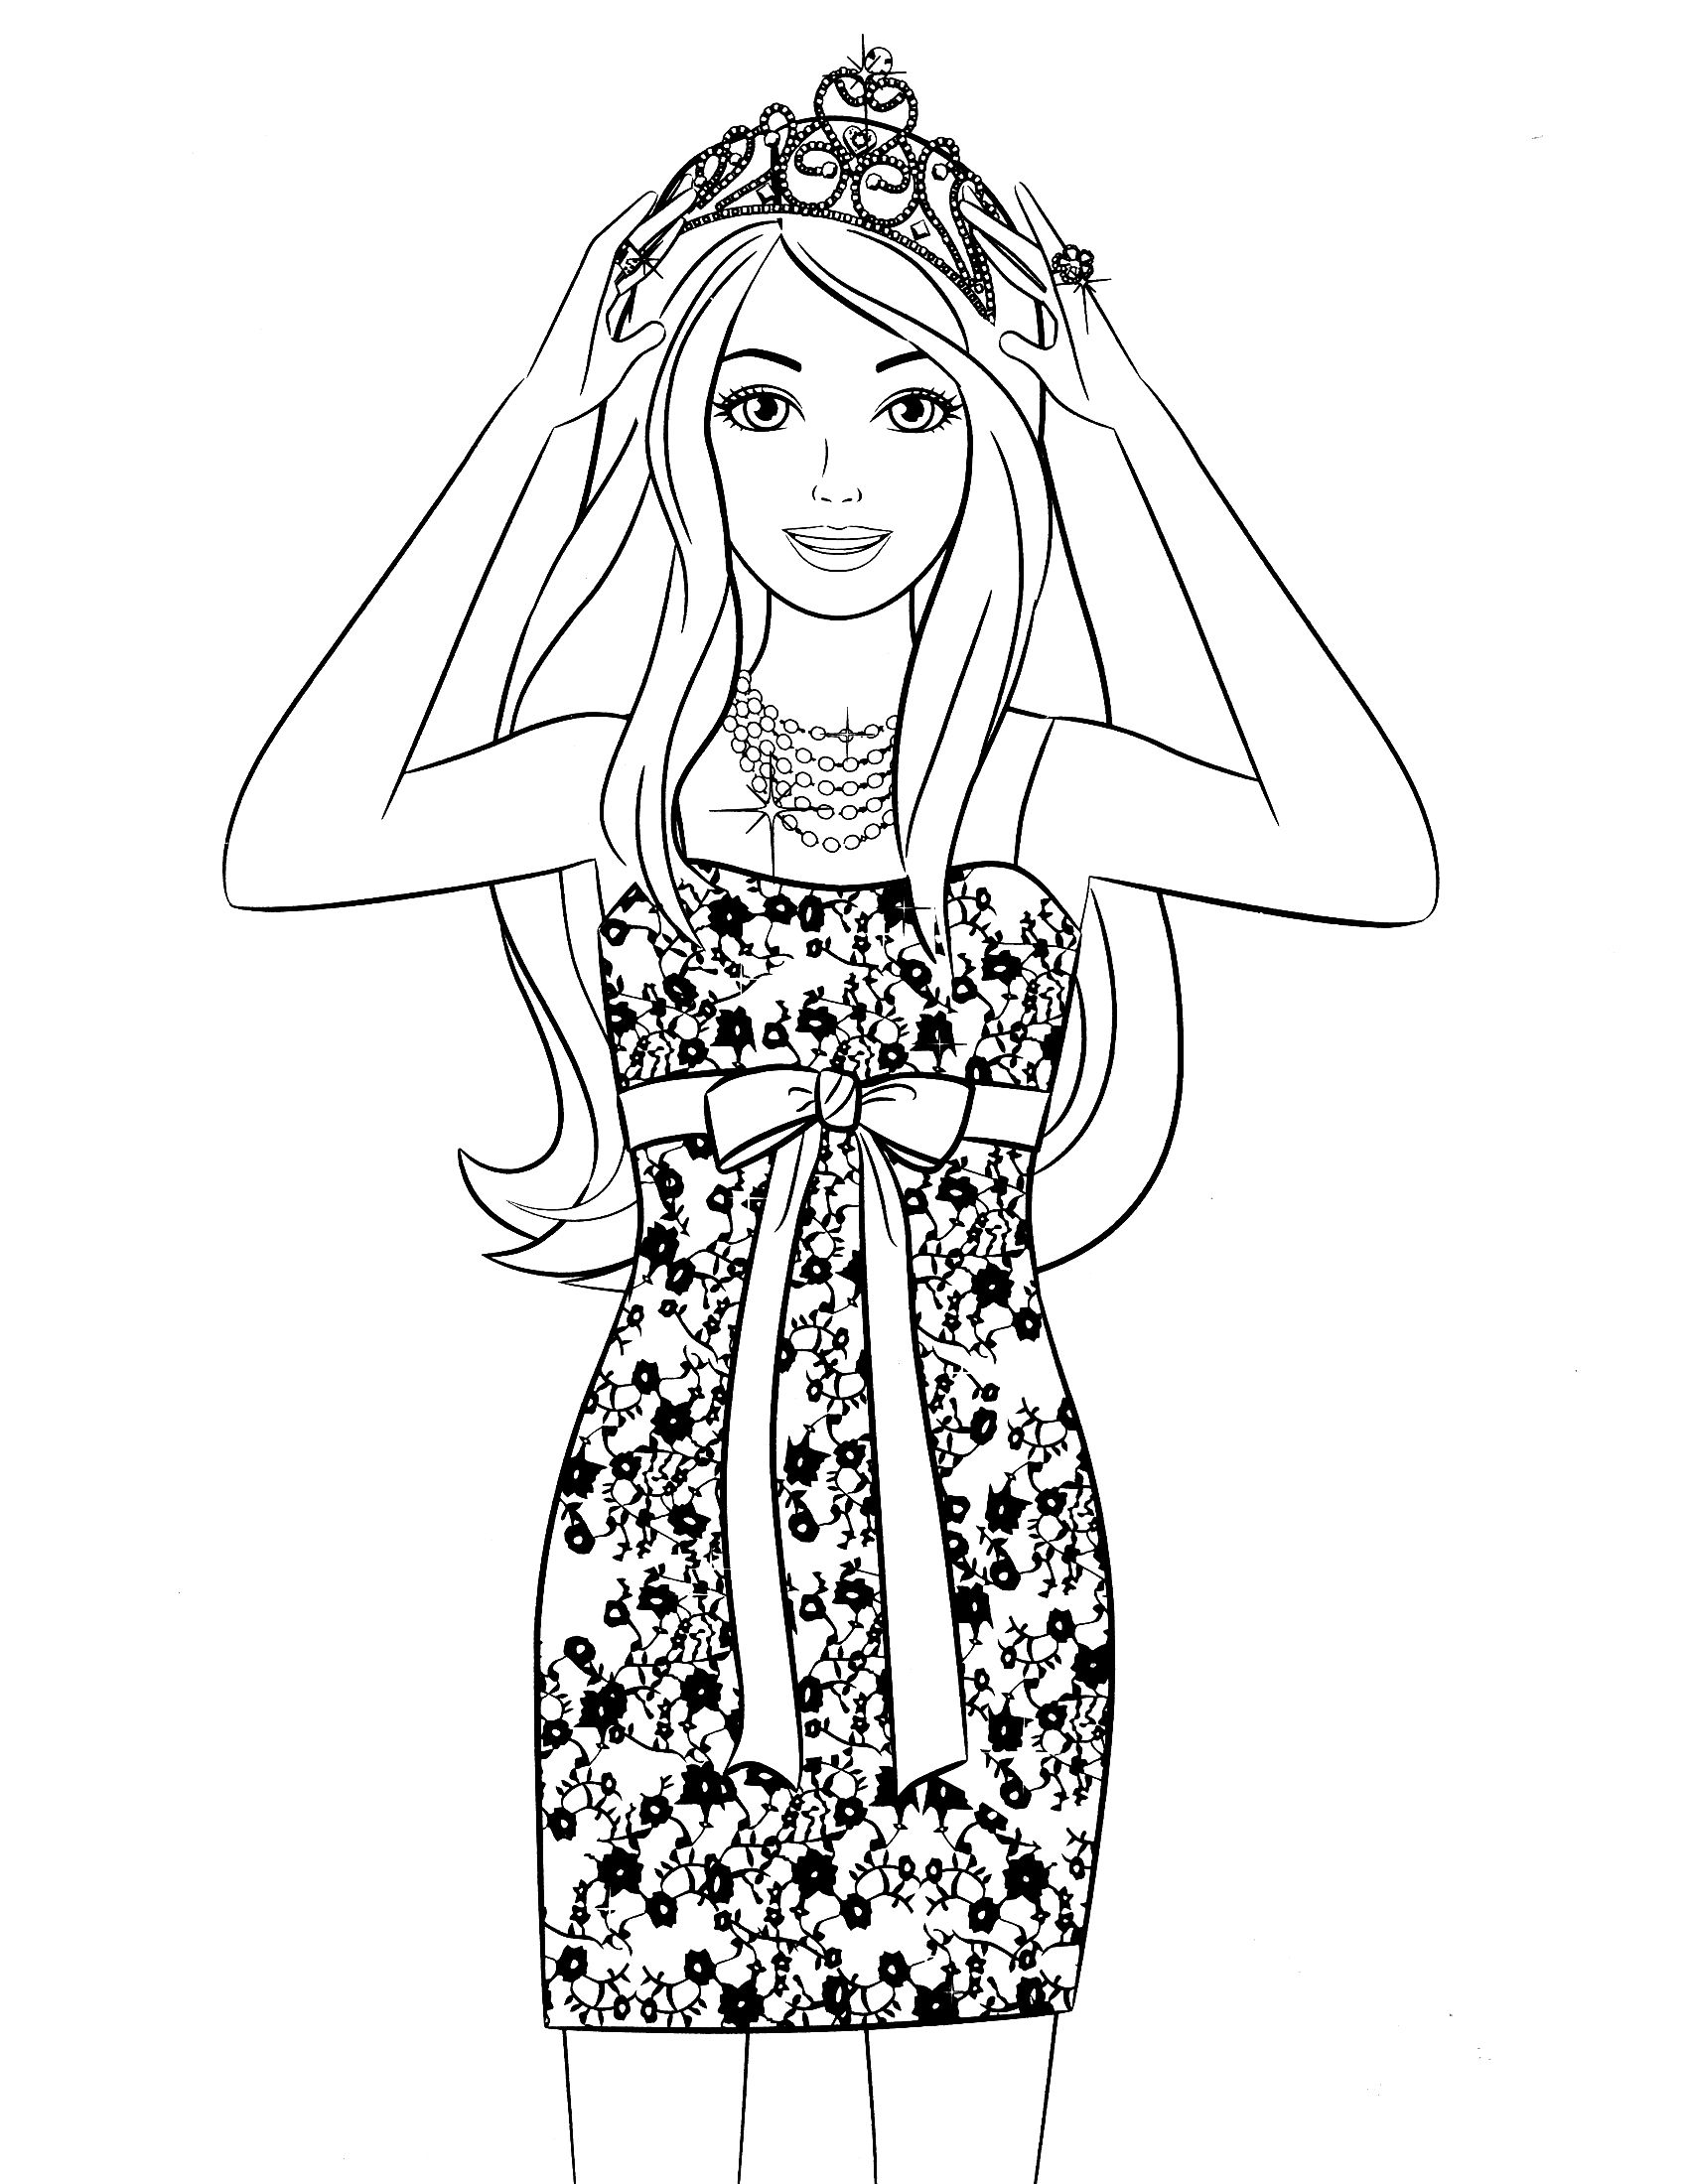 Barbie 89 Coloringcolor Com Barbie Coloring Pages Barbie Coloring Cartoon Coloring Pages